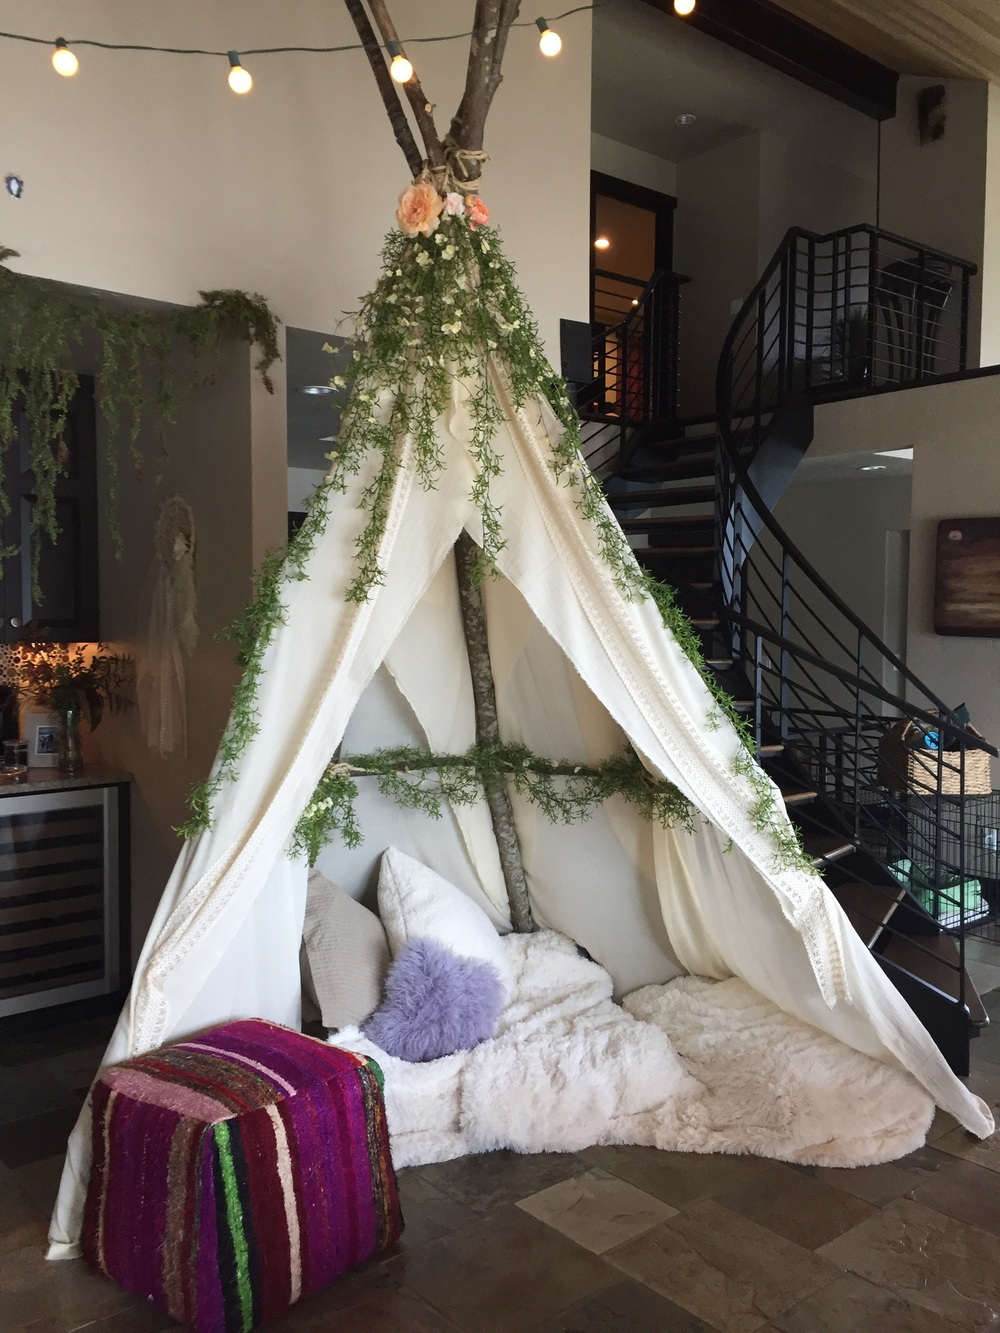 the show stopper of the party: this handmade teepee done by my aunt, uncle and cousins! they are amazingly talented and creative! I love love love